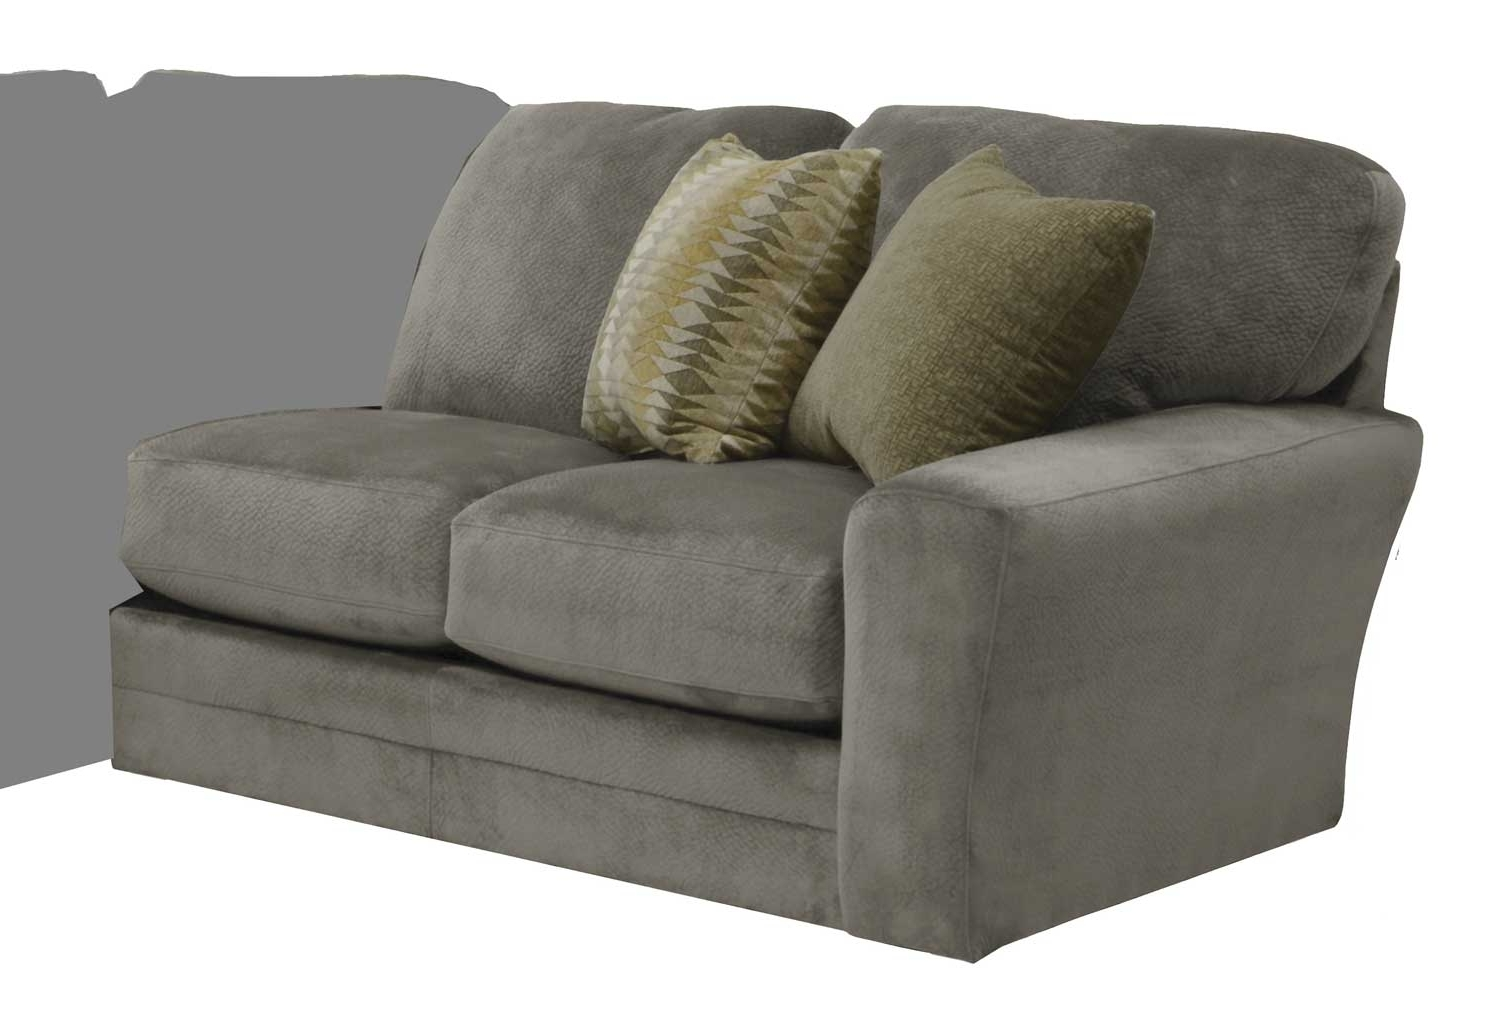 Removable Cover Sofa – Home And Textiles Regarding Well Known Sofas With Removable Covers (View 4 of 20)